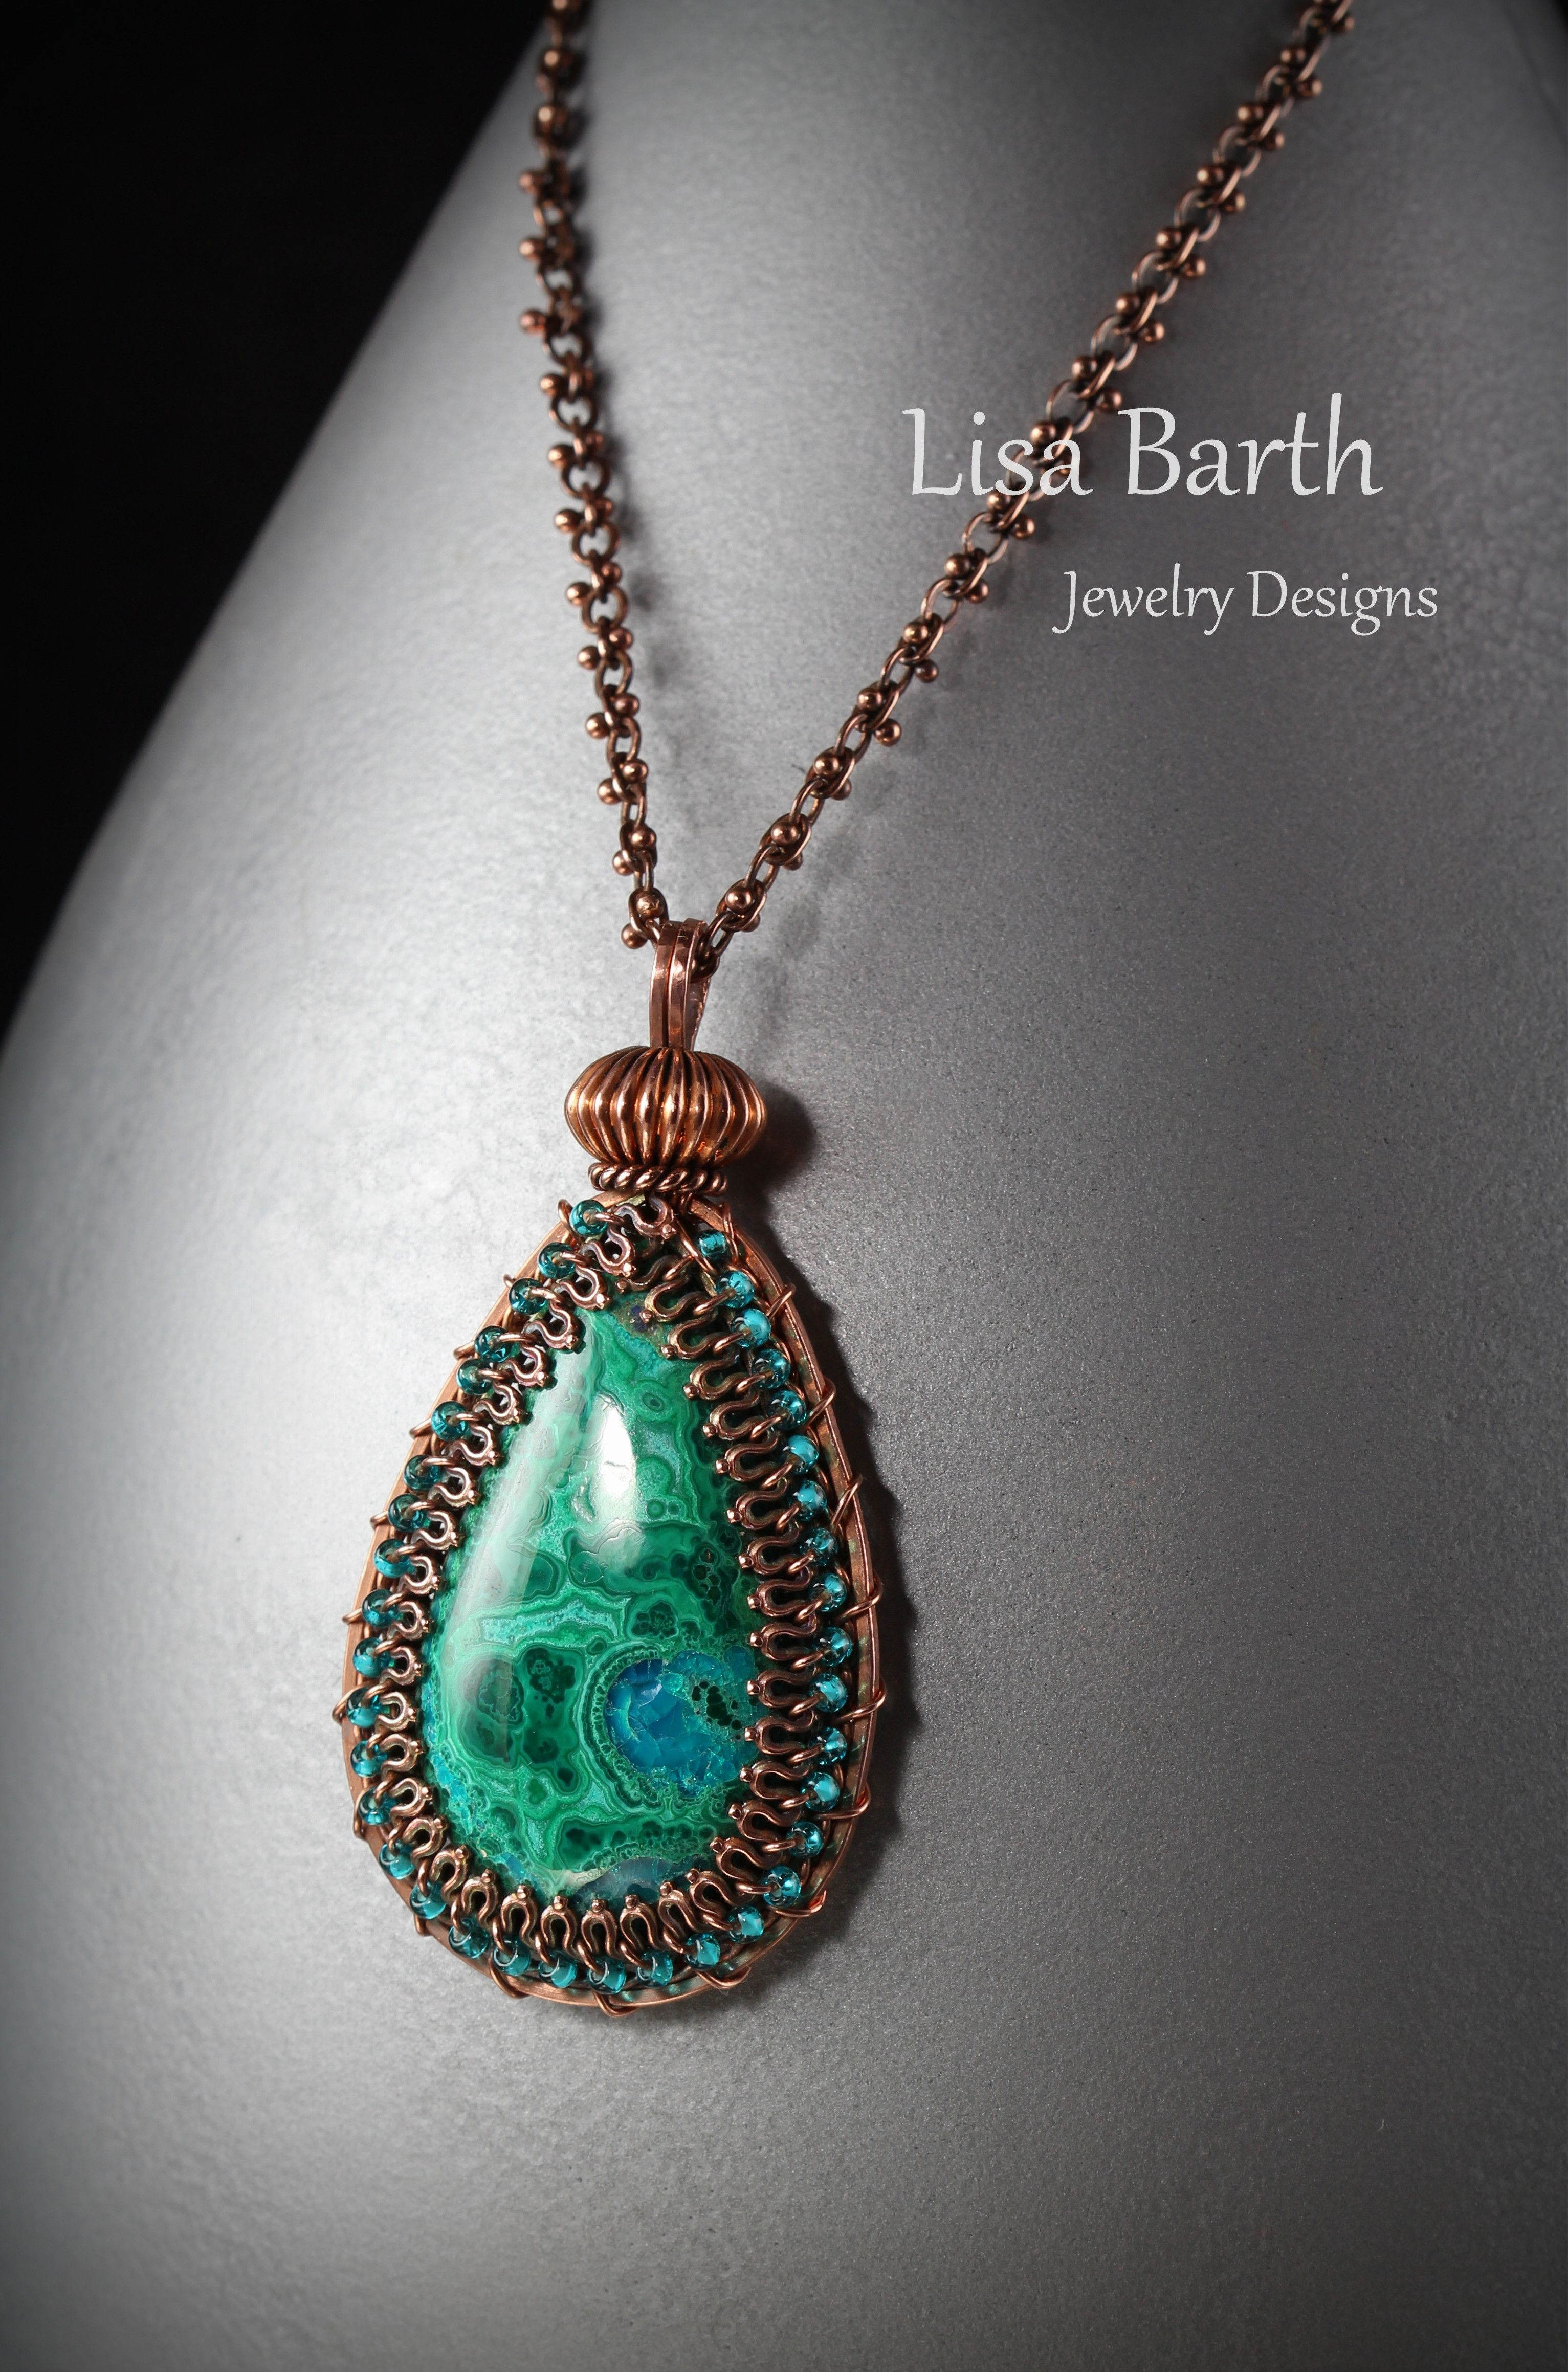 Hand made with copper and Chrysocolla/Malachite cab. Lisa Barth ...